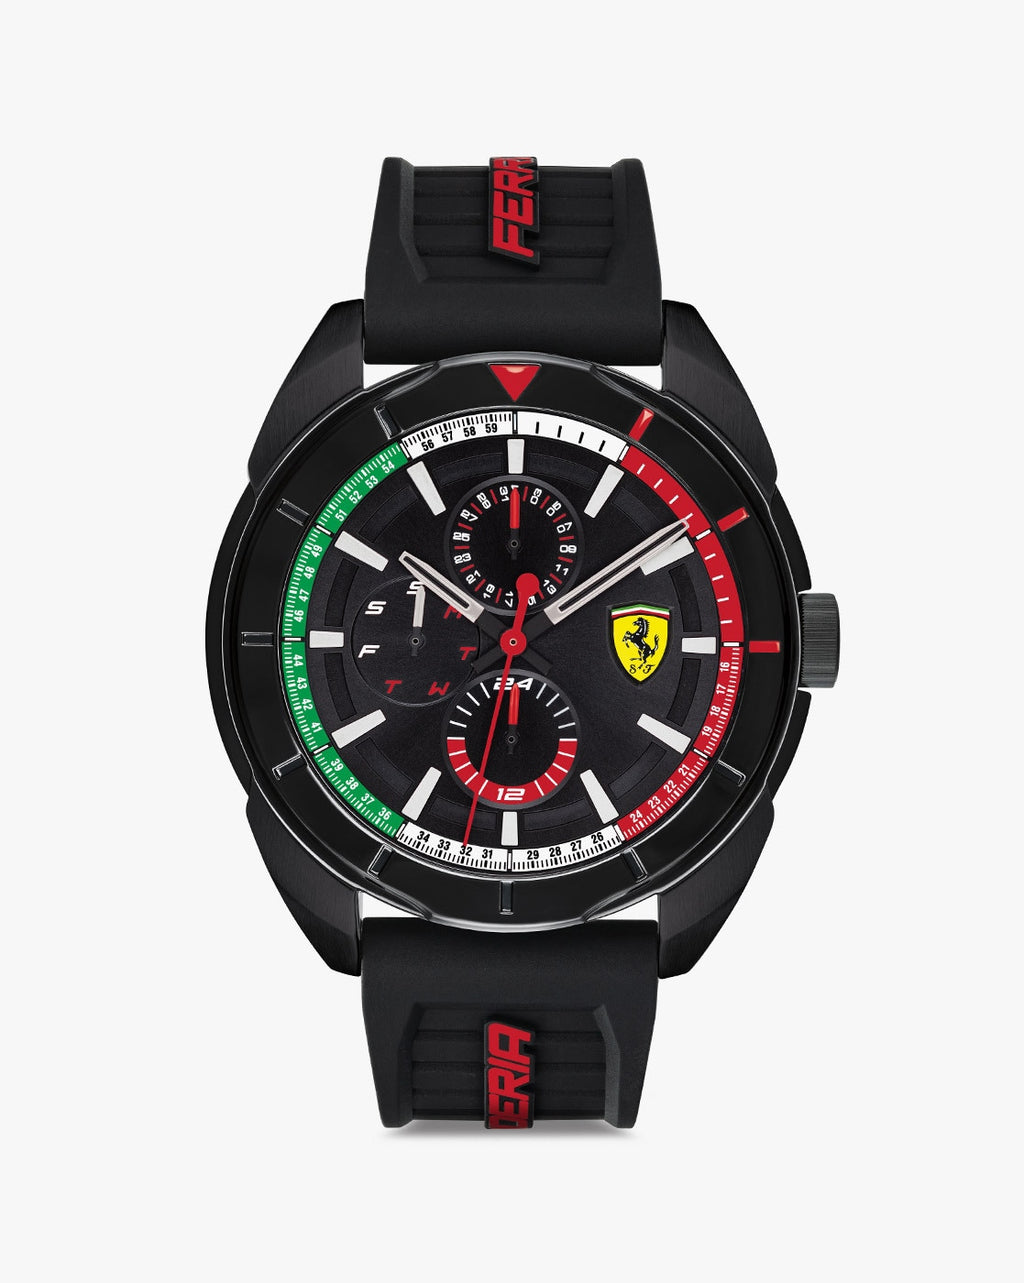 830577 Chronograph Watch with Silicone Strap